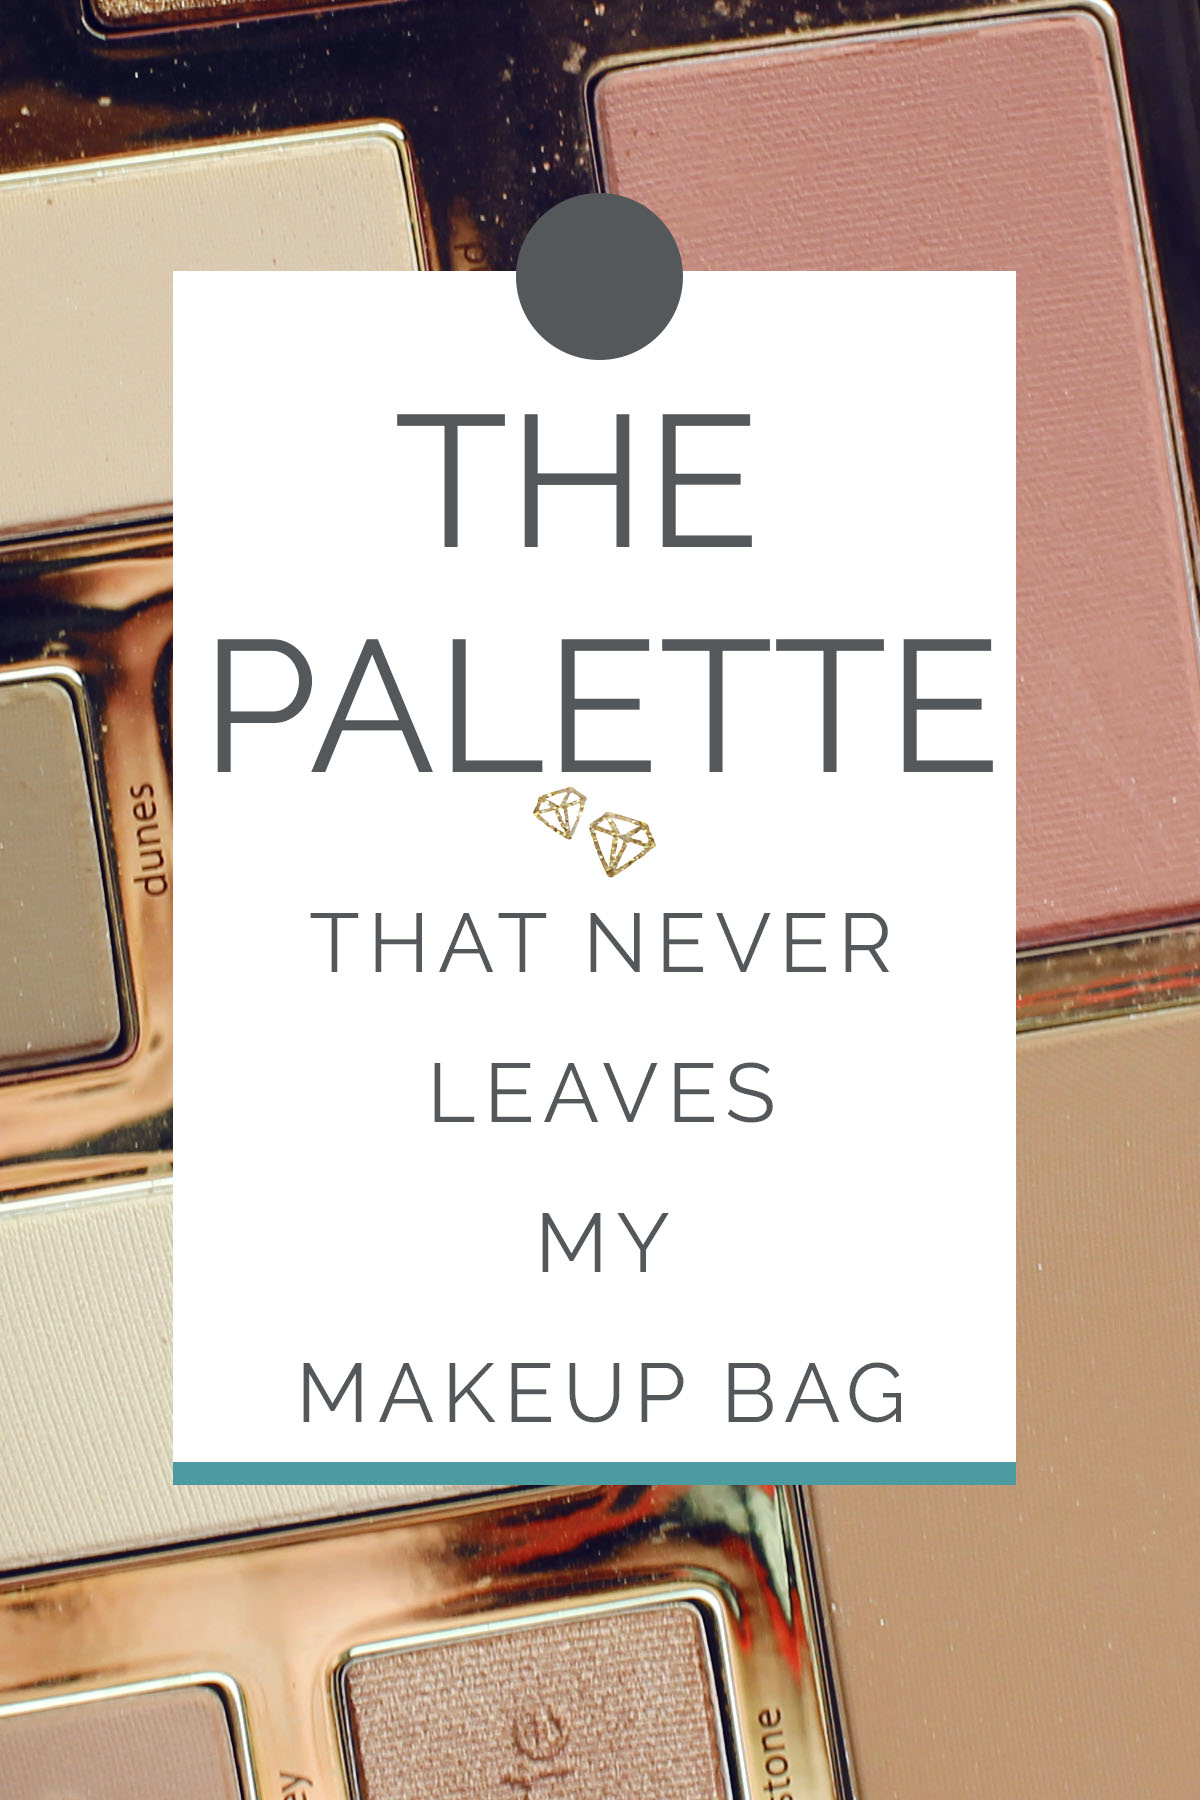 The palette that never leaves my makeup bag